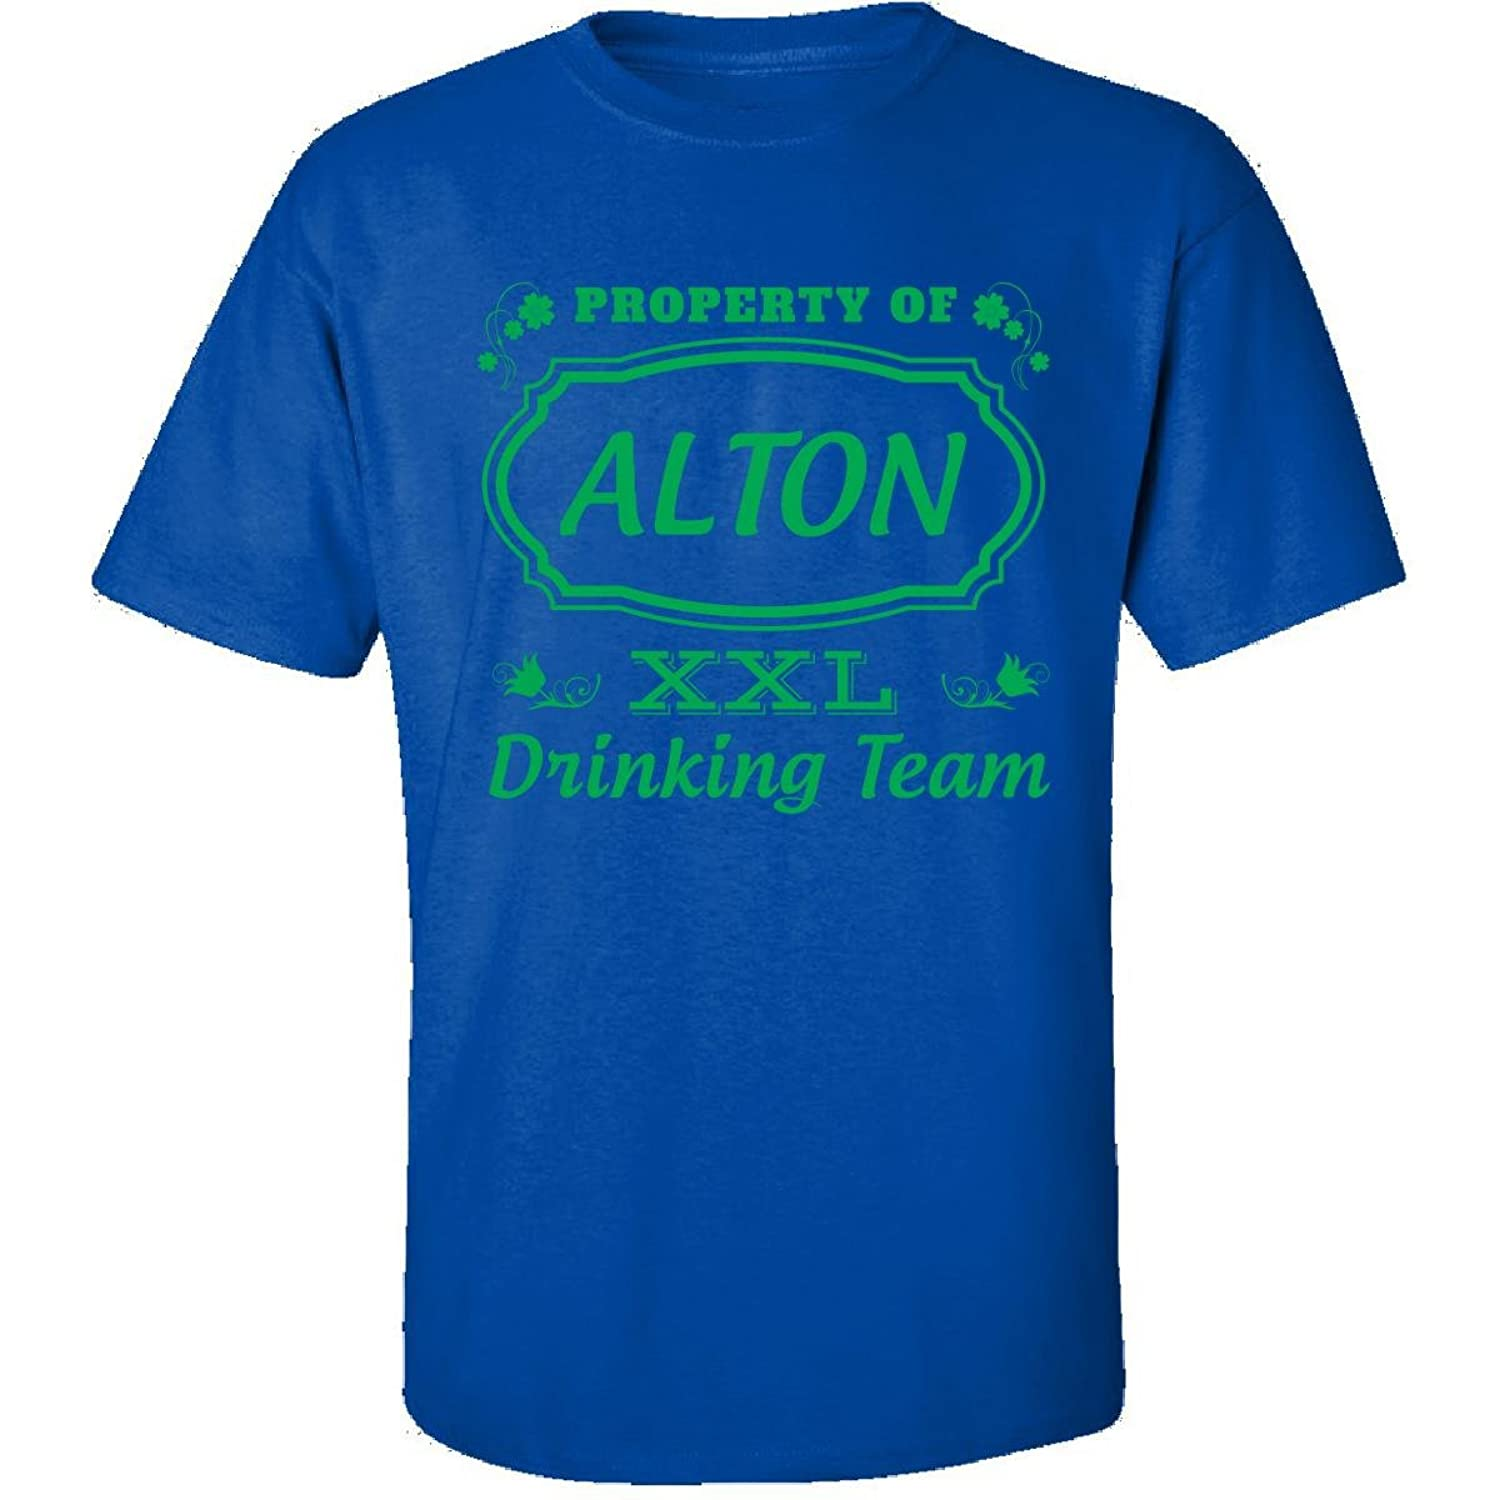 Property Of Alton St Patrick Day Beer Drinking Team - Adult Shirt